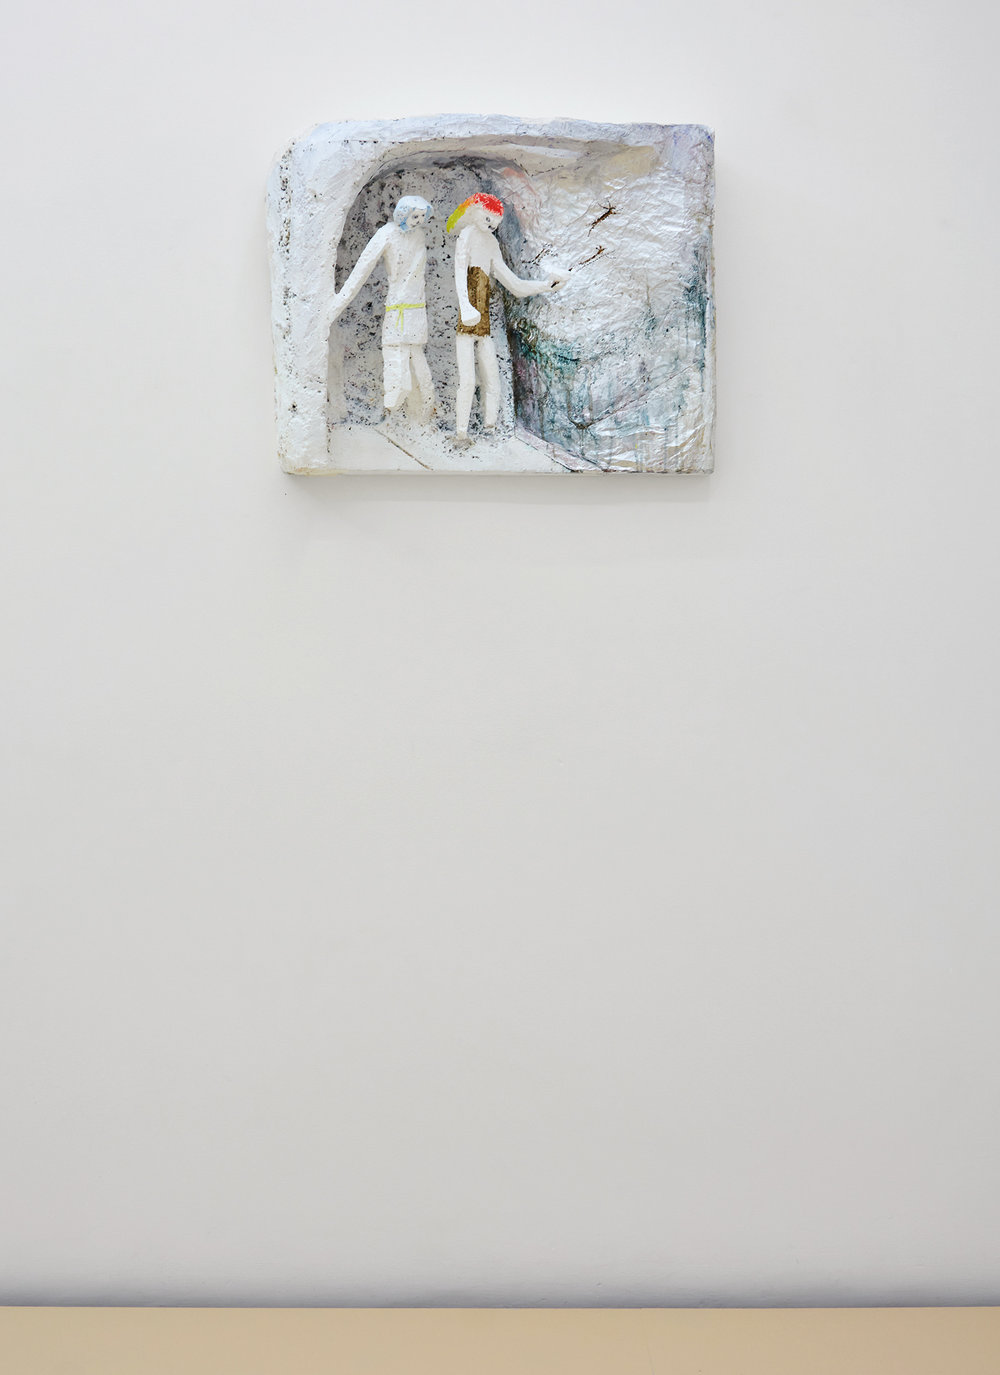 Lin May Saeed, Freundschaft/Friendship relief, 2010. Styrofoam, acrylic paint, foil, 45 x 57 x 15,5 cm